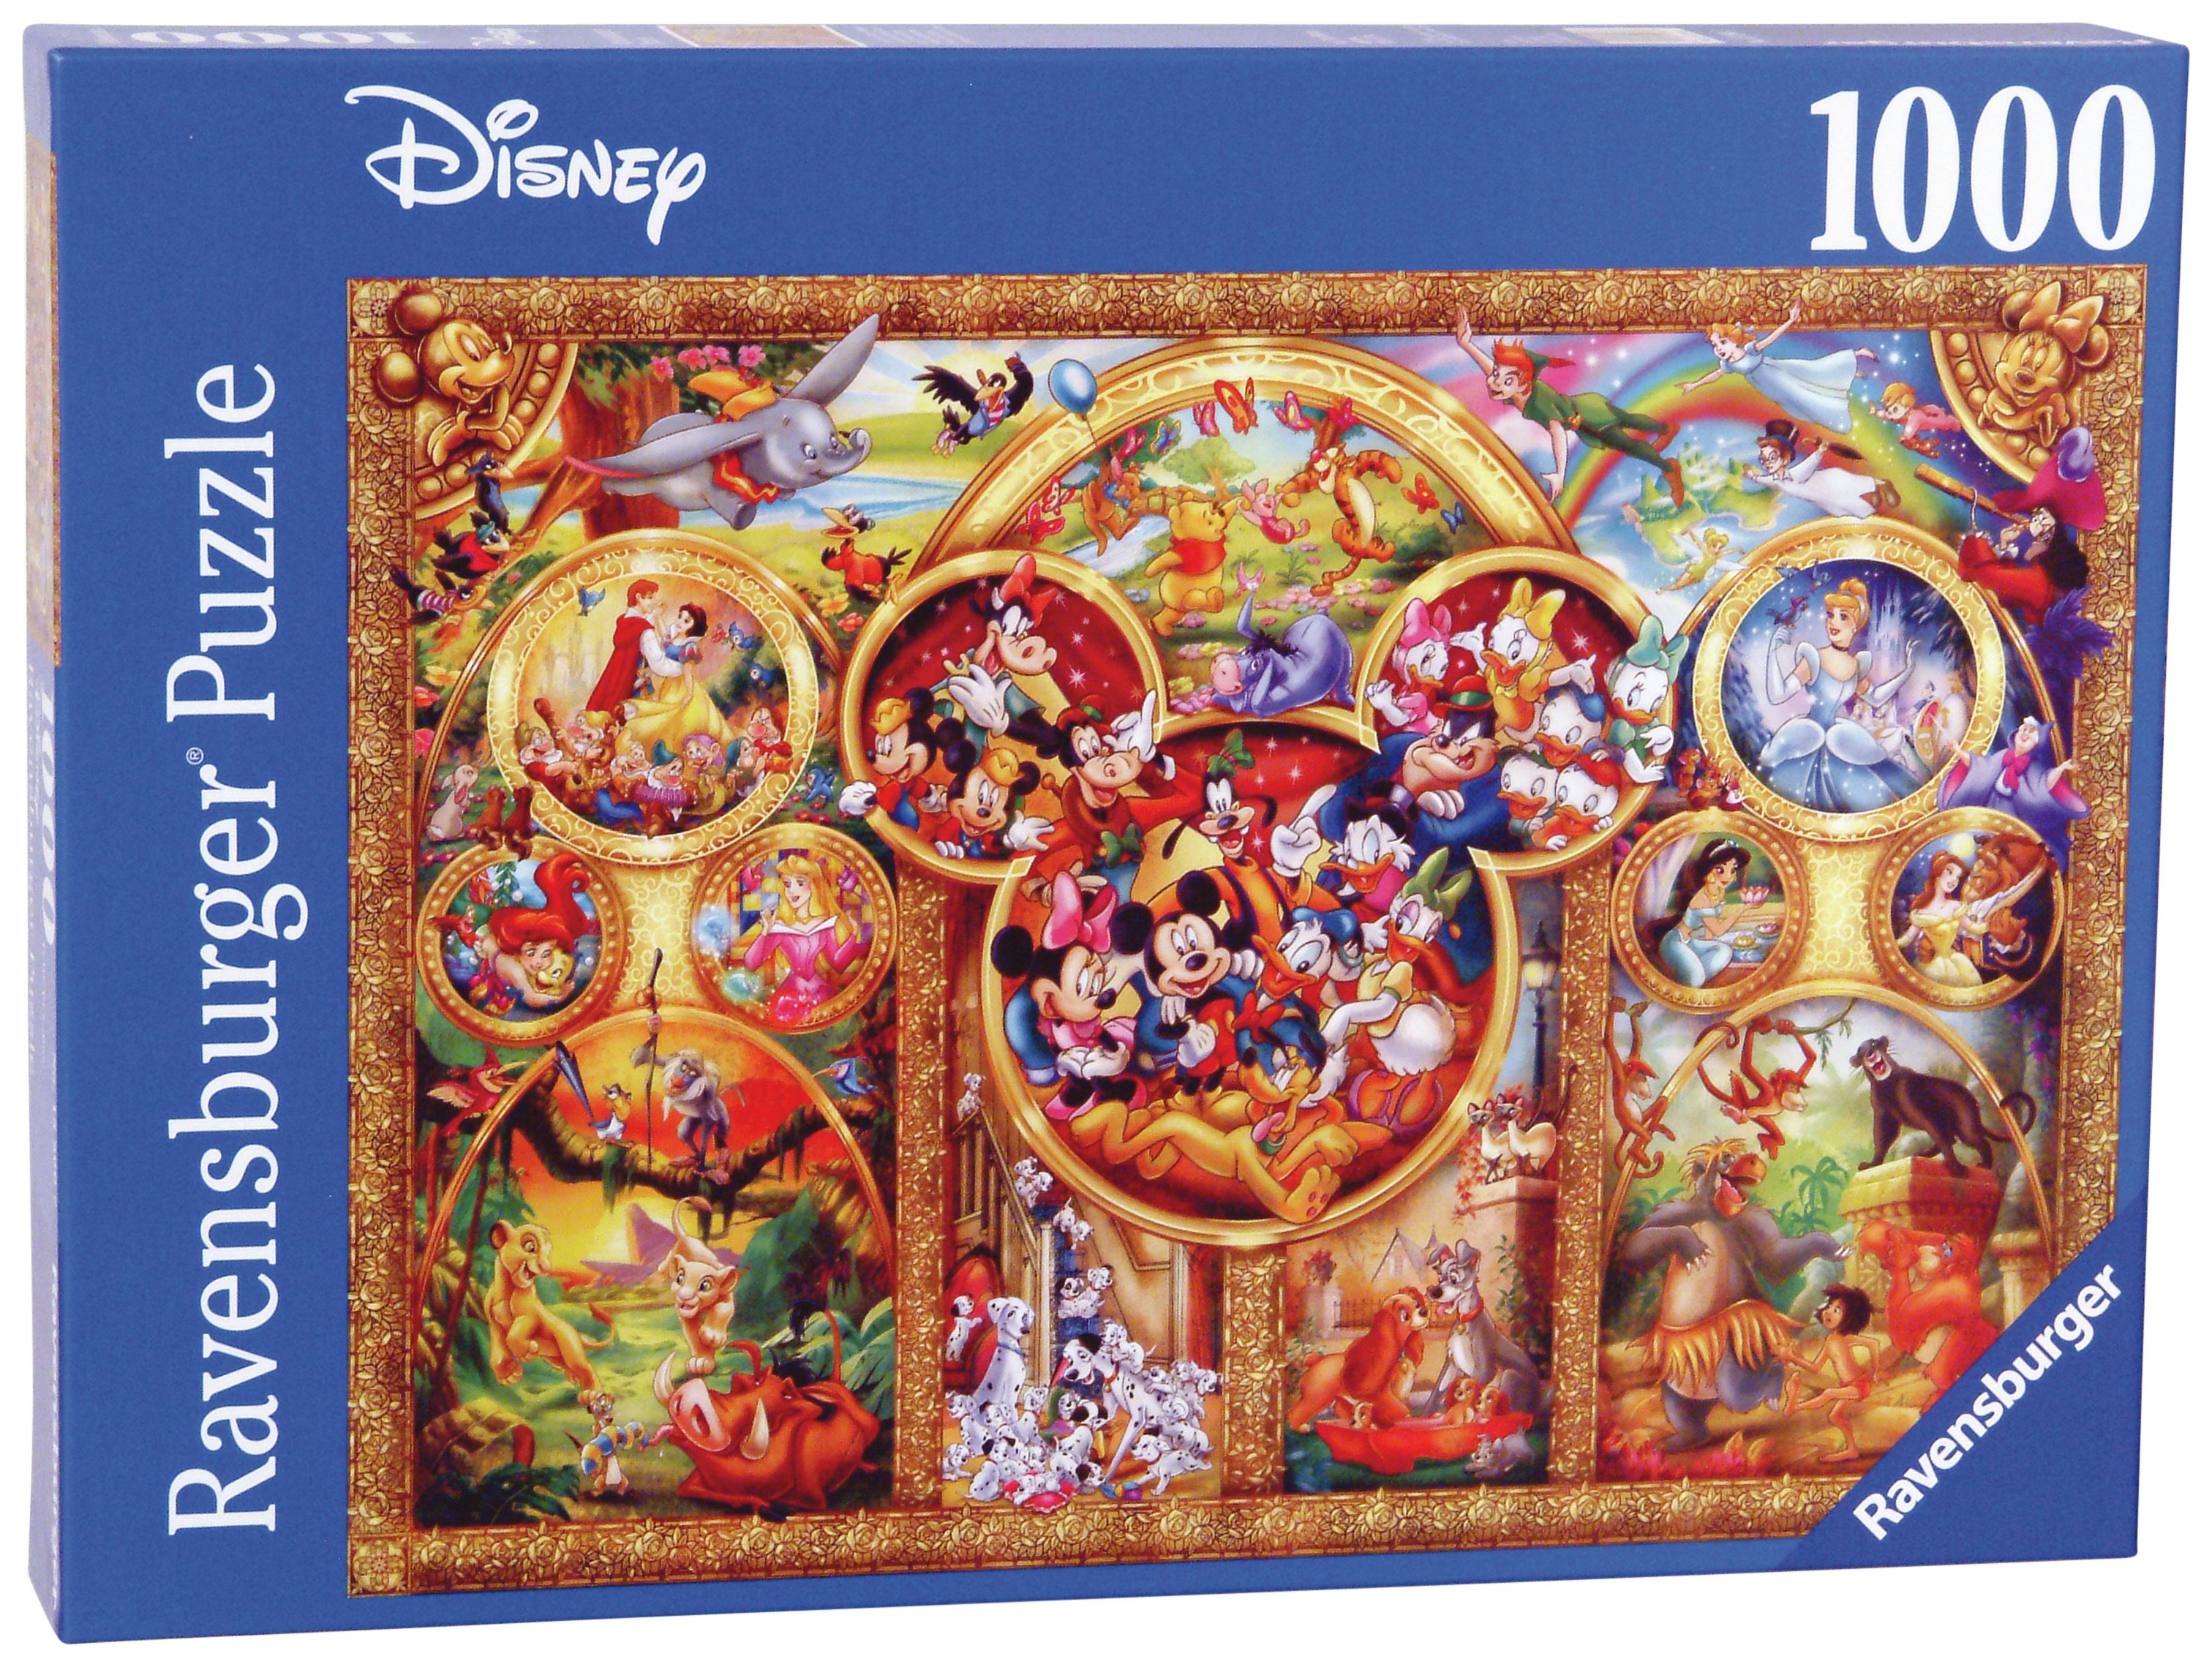 The Best of Disney Themes 1000 Piece Puzzle. review